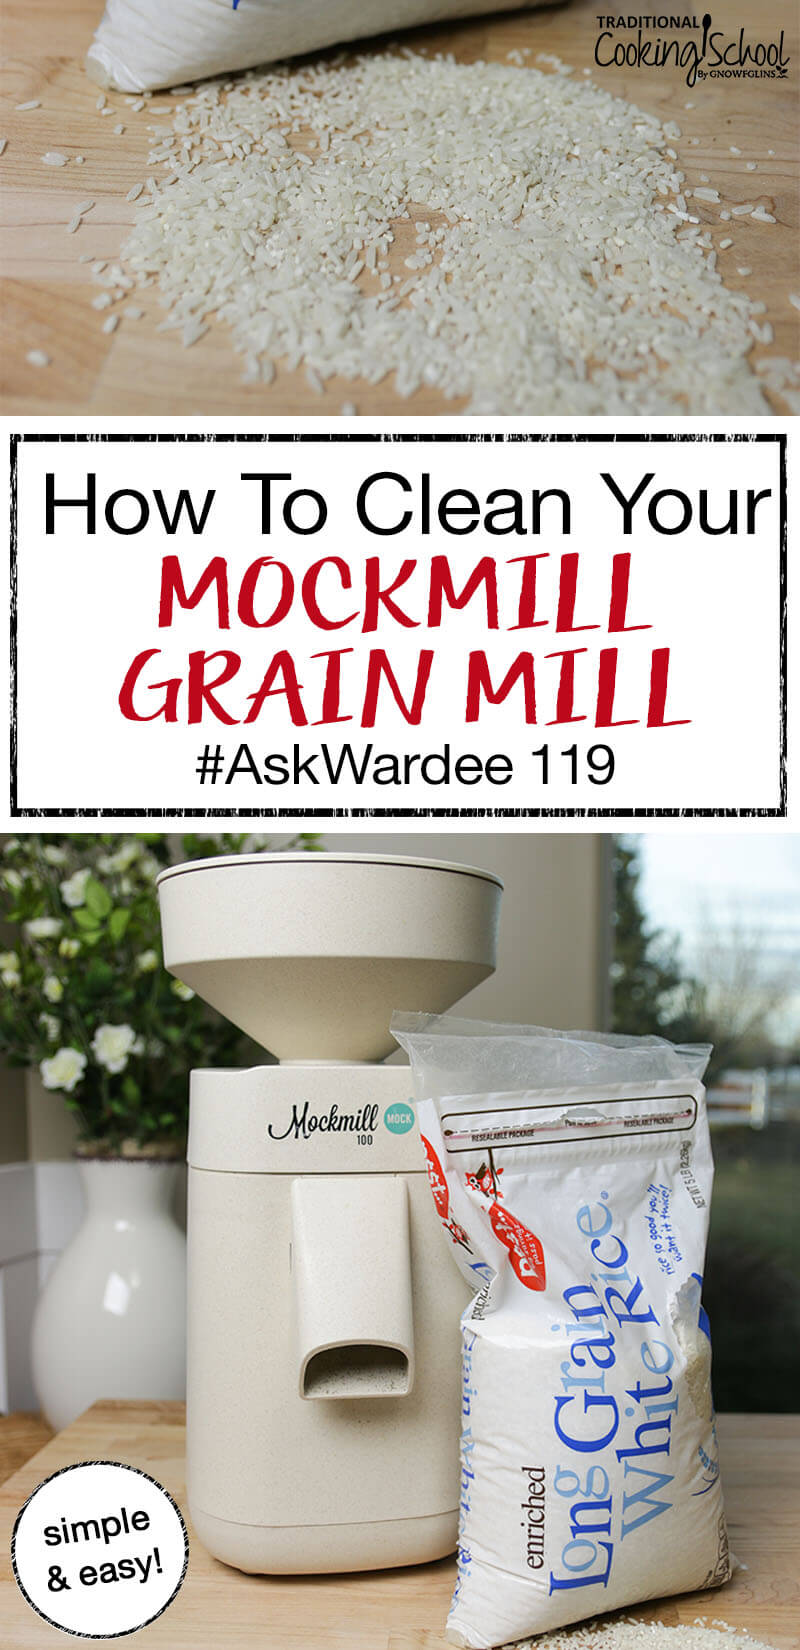 "photo collage of the Mockmill home stone grain mill next to a spilled bag of cheap white rice, with text overlay: ""How To Clean Your Mockmill #AskWardee 119"""